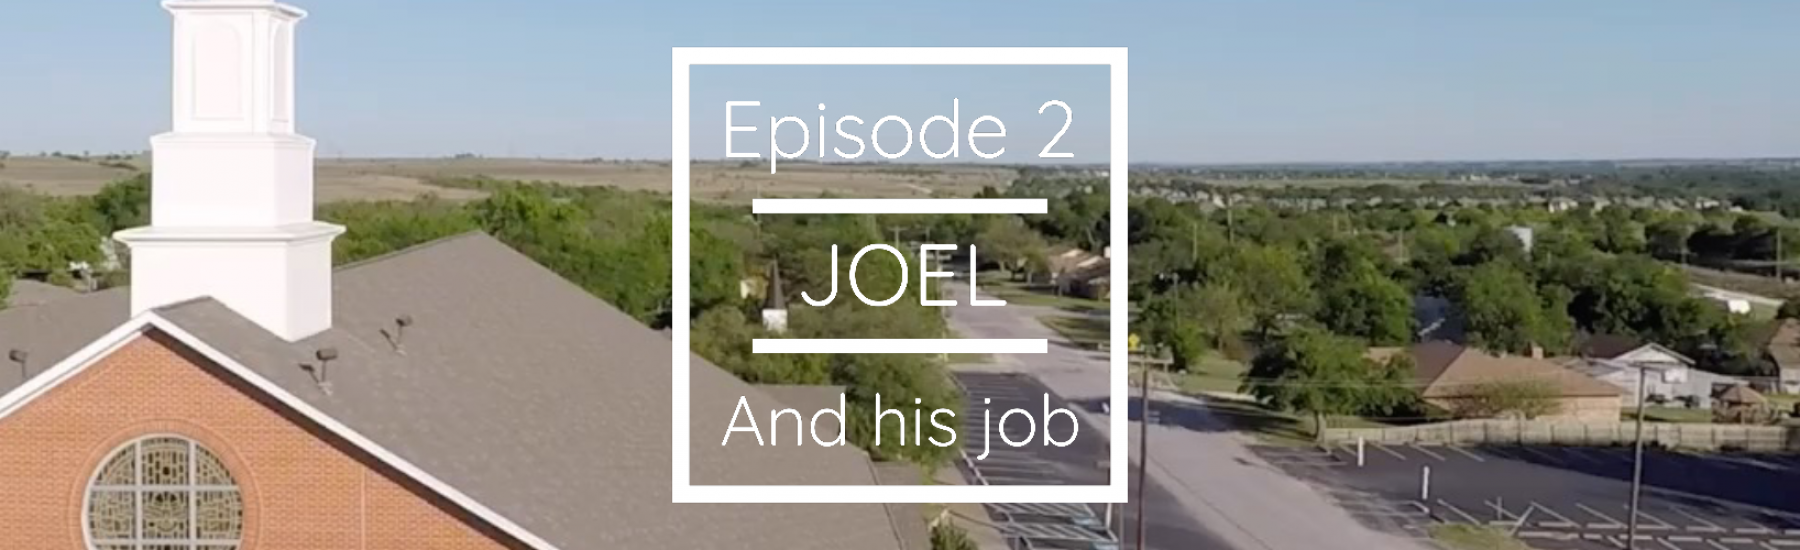 Episode 2 - Joel and his Job